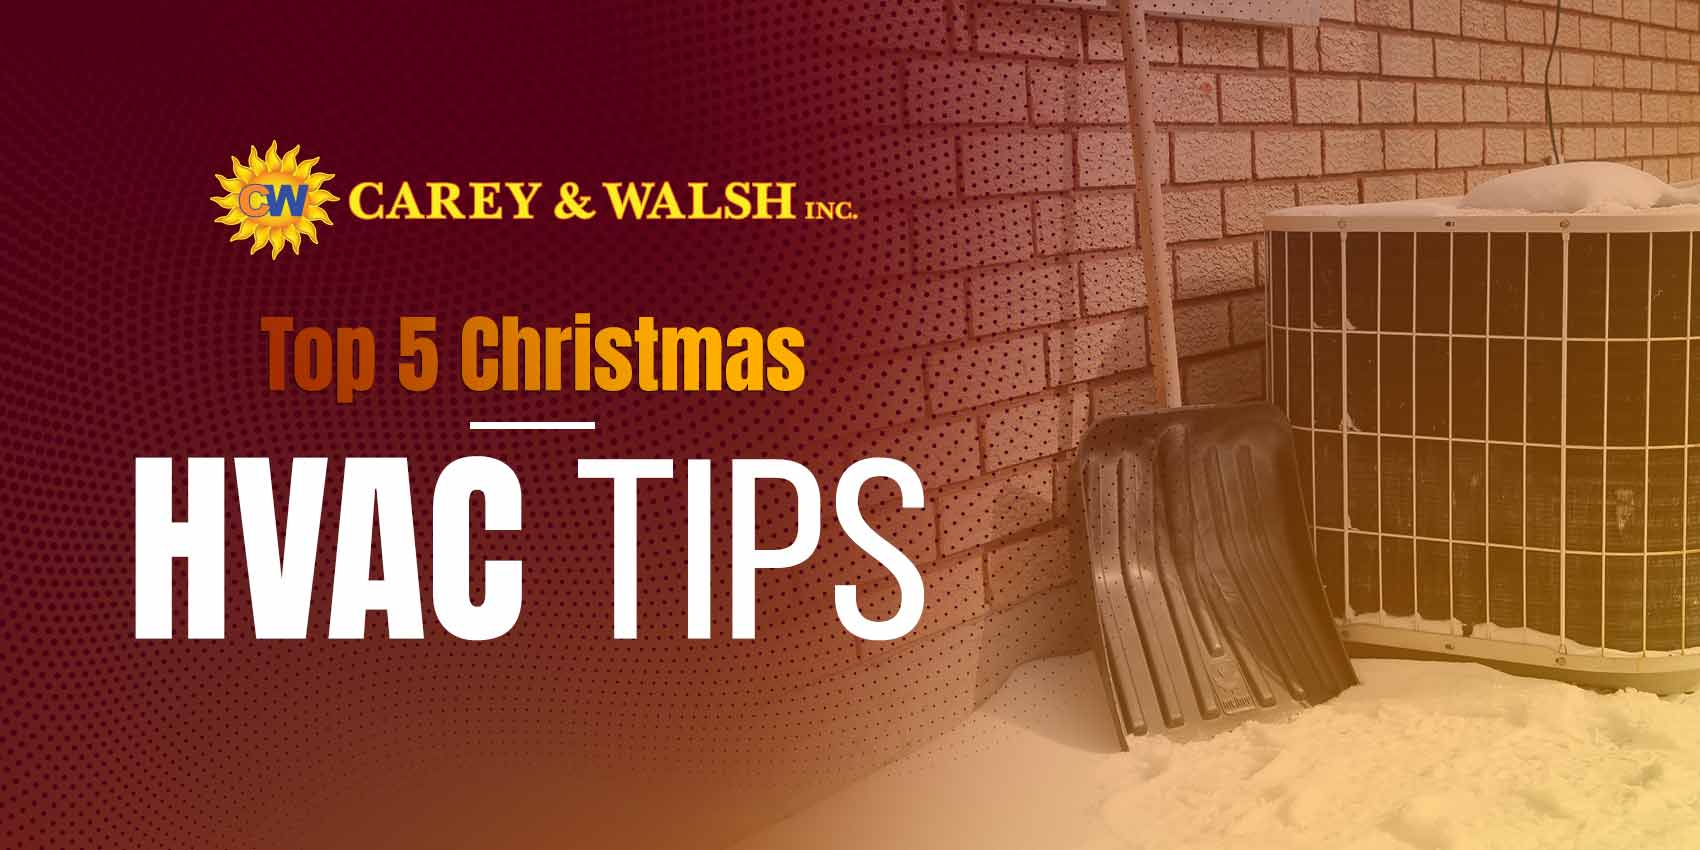 Top 5 Christmas HVAC Tips